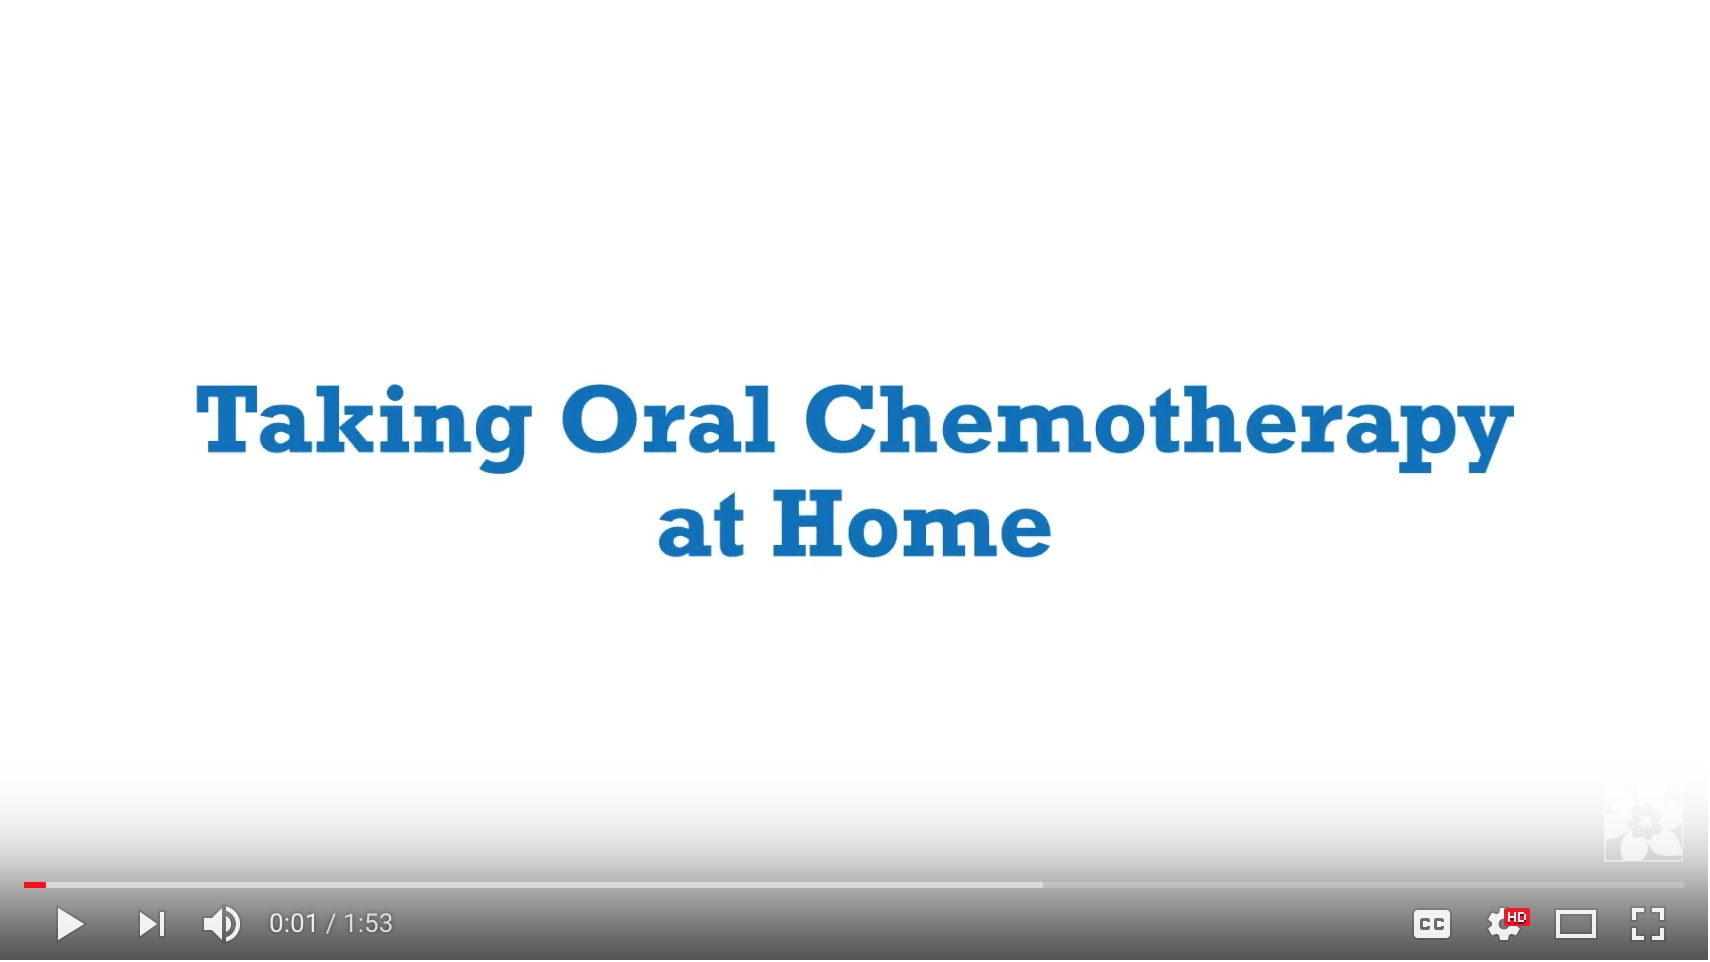 Canadian Cancer Society, Taking oral chemotherapy at home